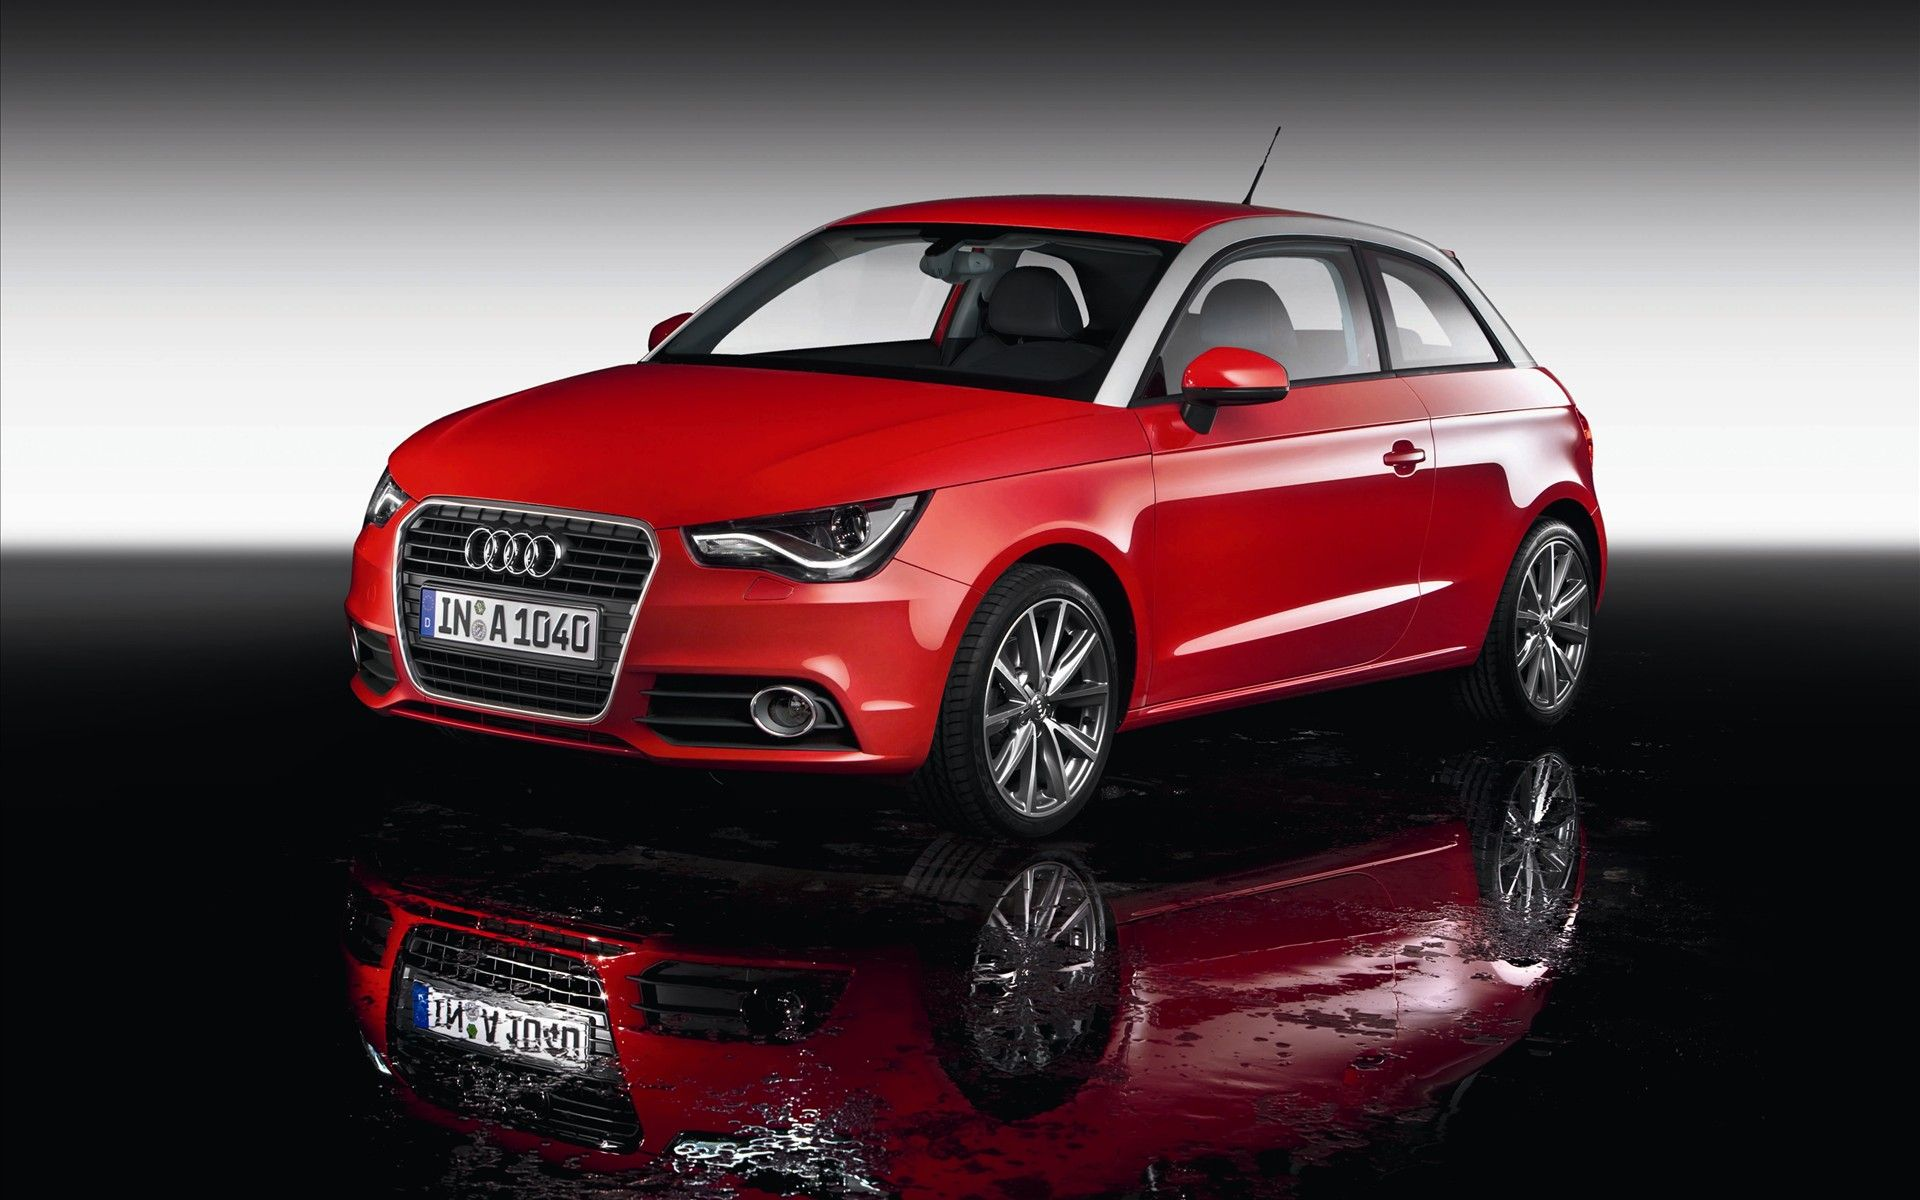 1920x1200 - Audi A1 Wallpapers 33